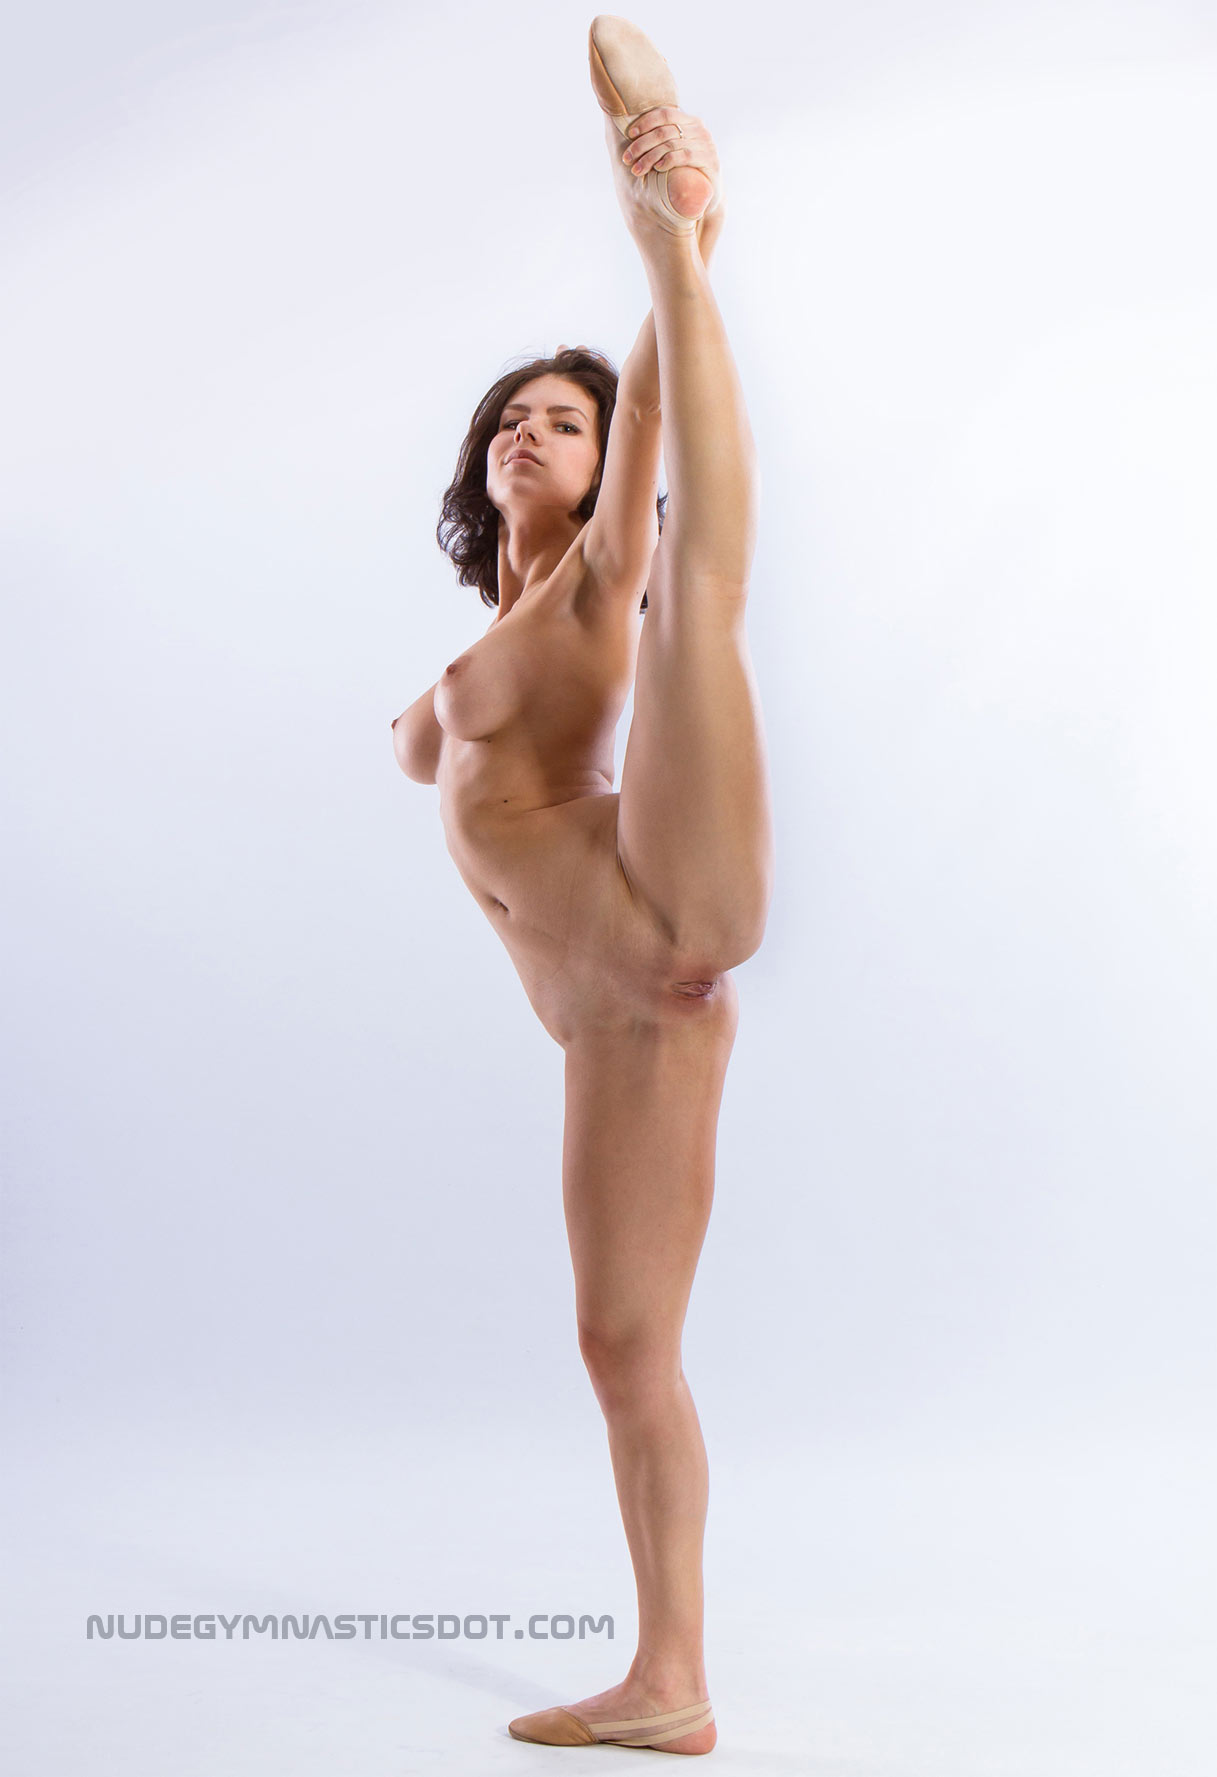 gymnastic girls in leotards and nude